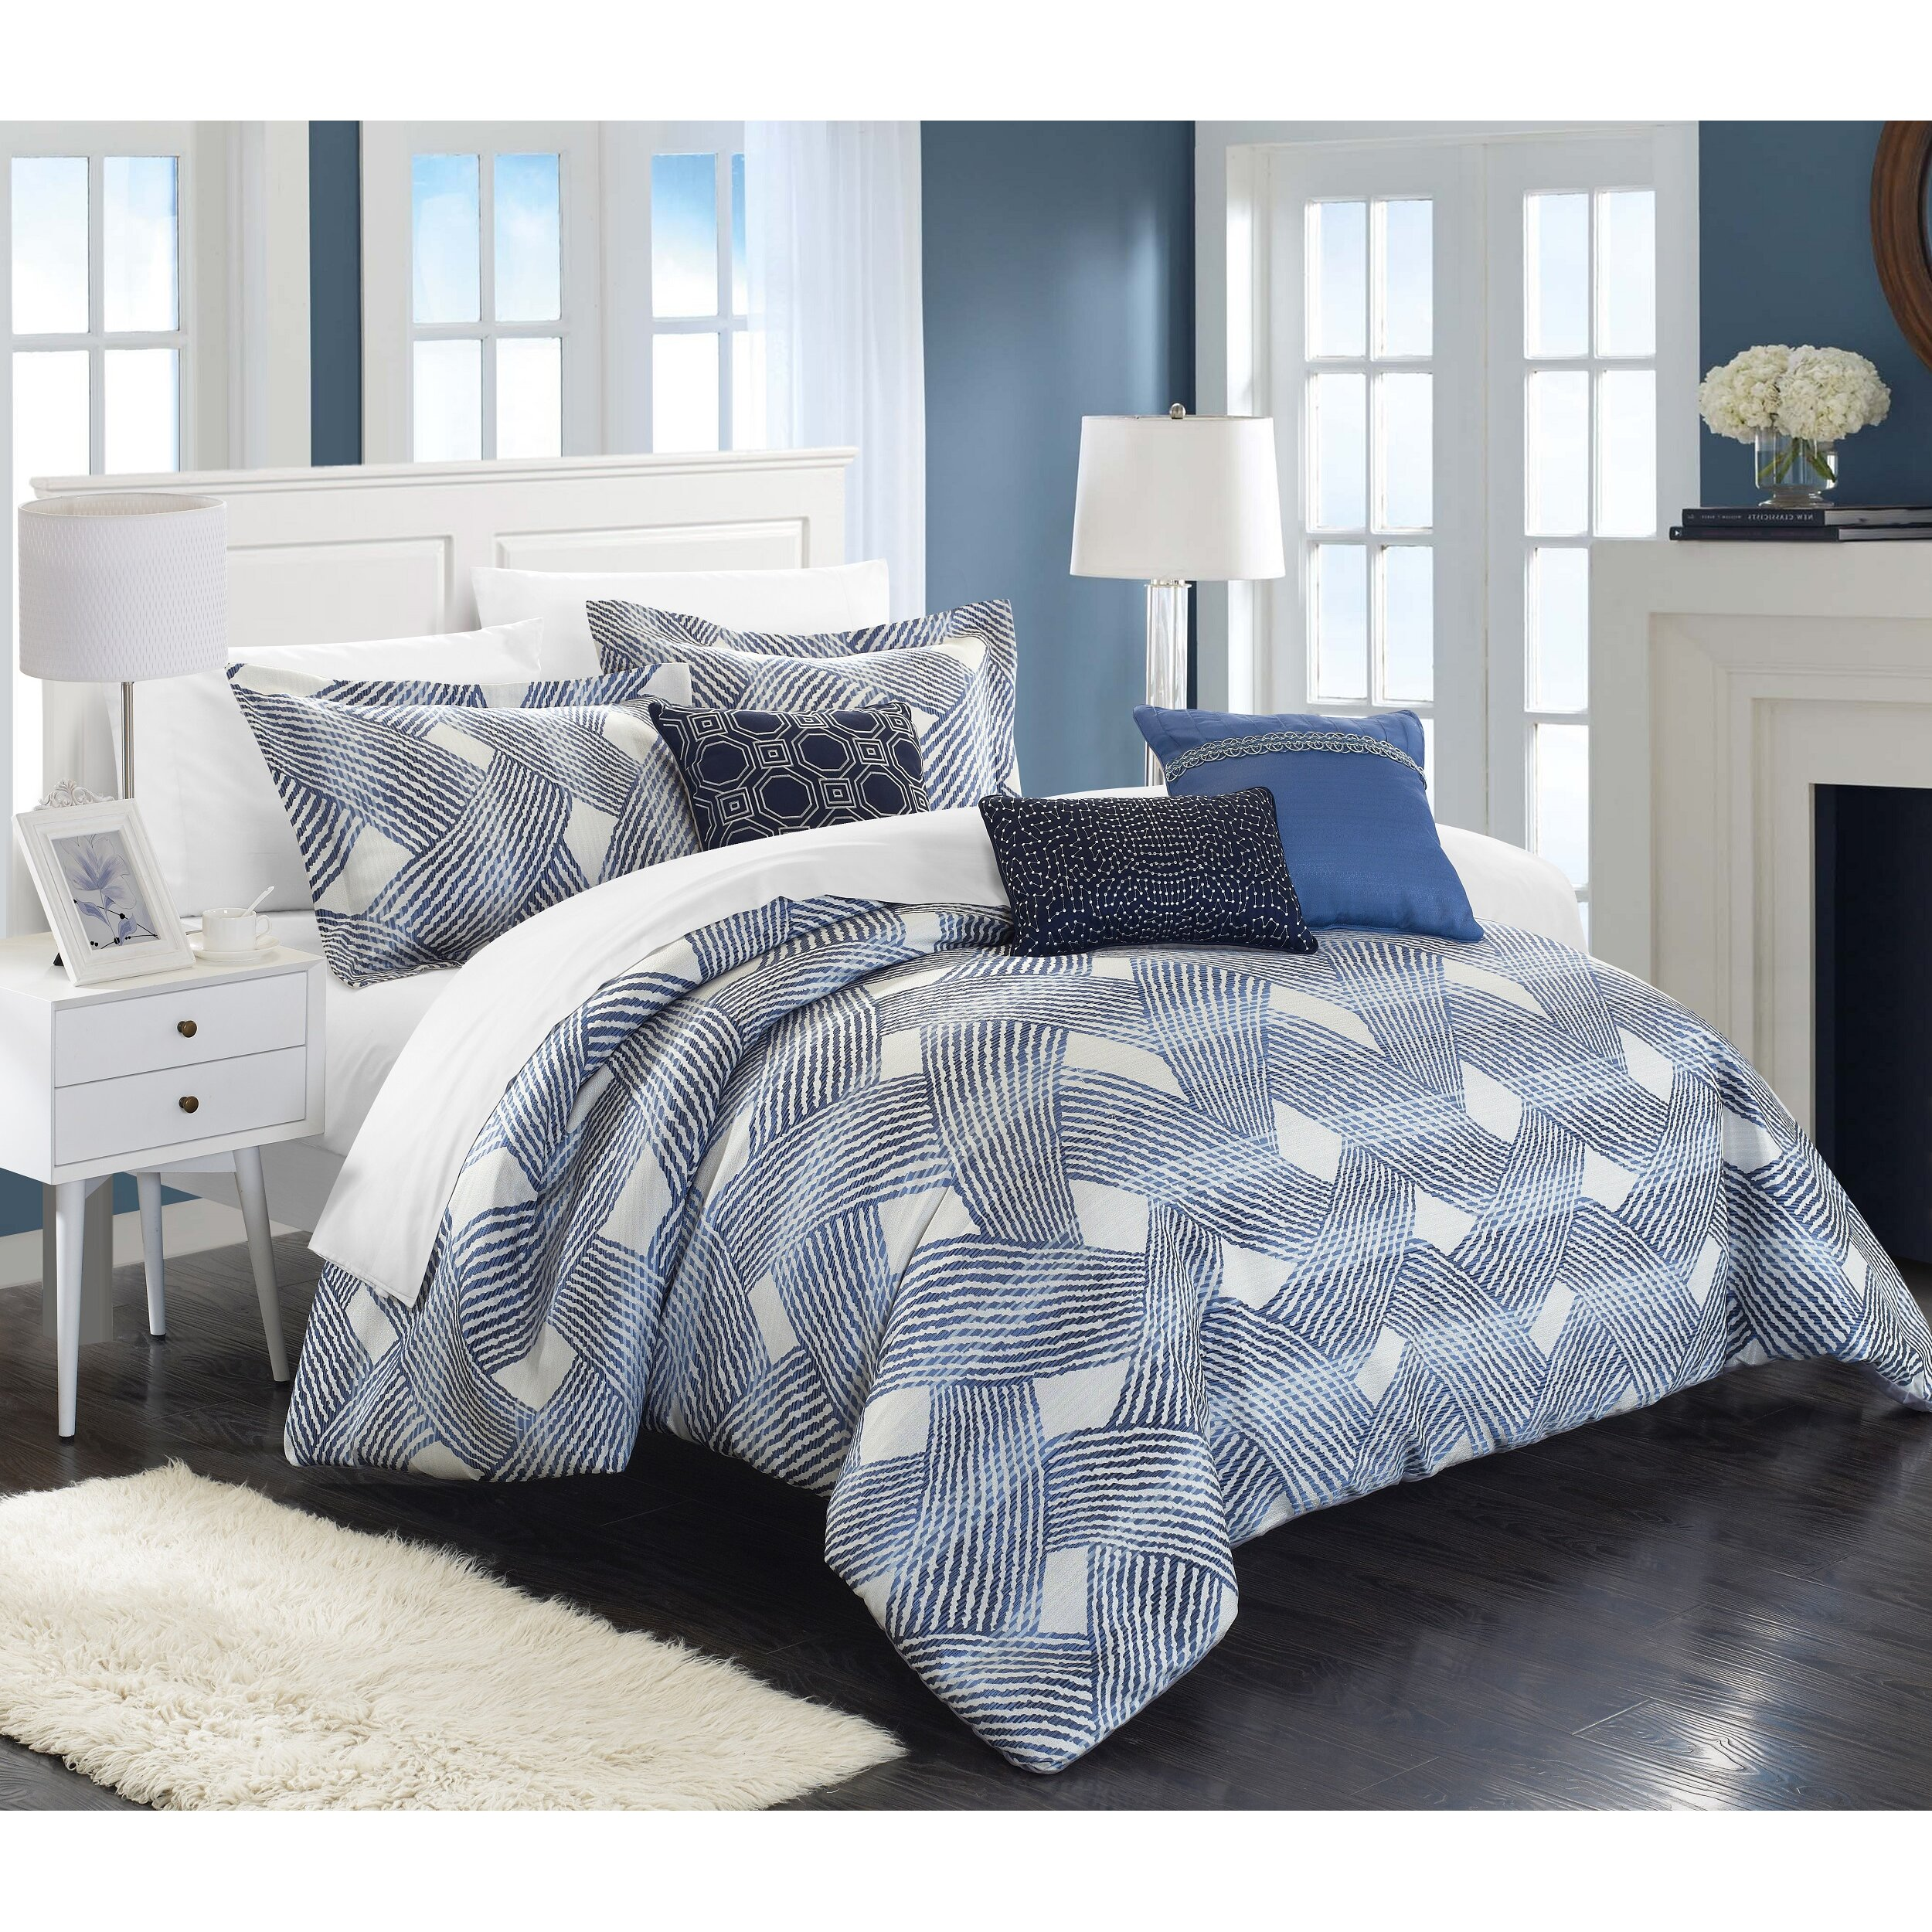 Chic home fiorella 6 piece comforter set reviews wayfair for Home designs comforter